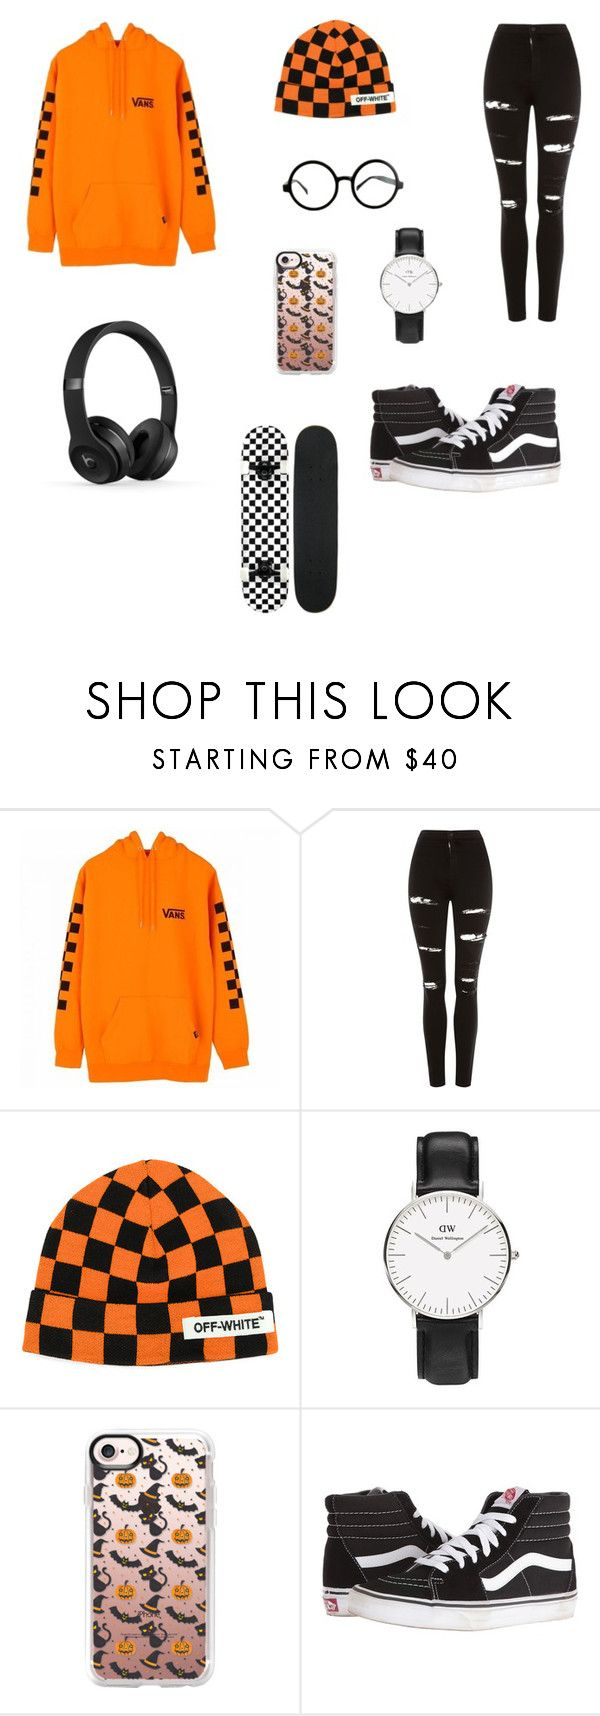 """""""Orange skater"""" by maiwinniethepooh ❤ liked on Polyvore featuring Vans, Topshop, Off-White, Casetify and Beats by Dr. Dre"""